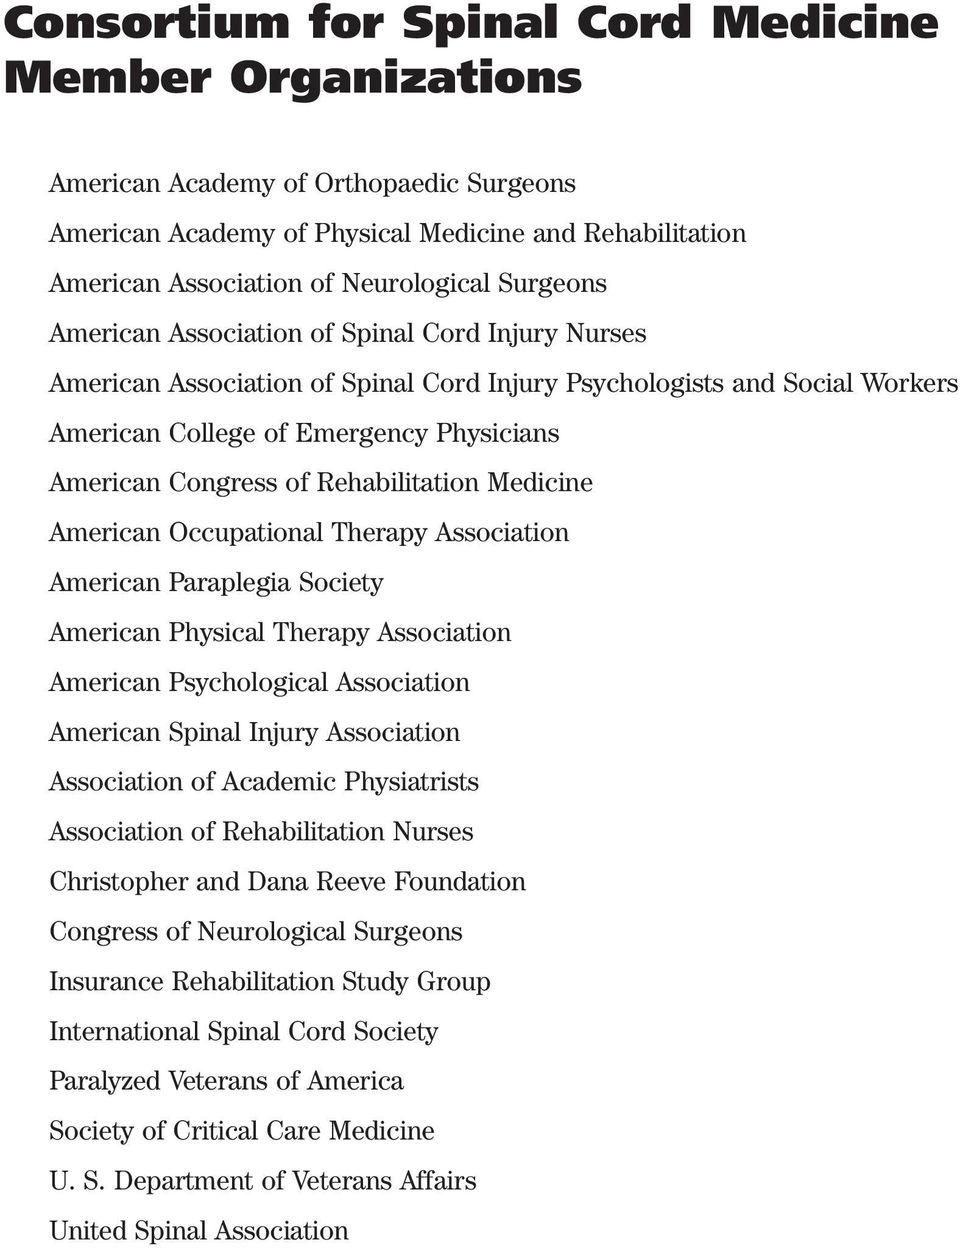 Rehabilitation Medicine American Occupational Therapy Association American Paraplegia Society American Physical Therapy Association American Psychological Association American Spinal Injury